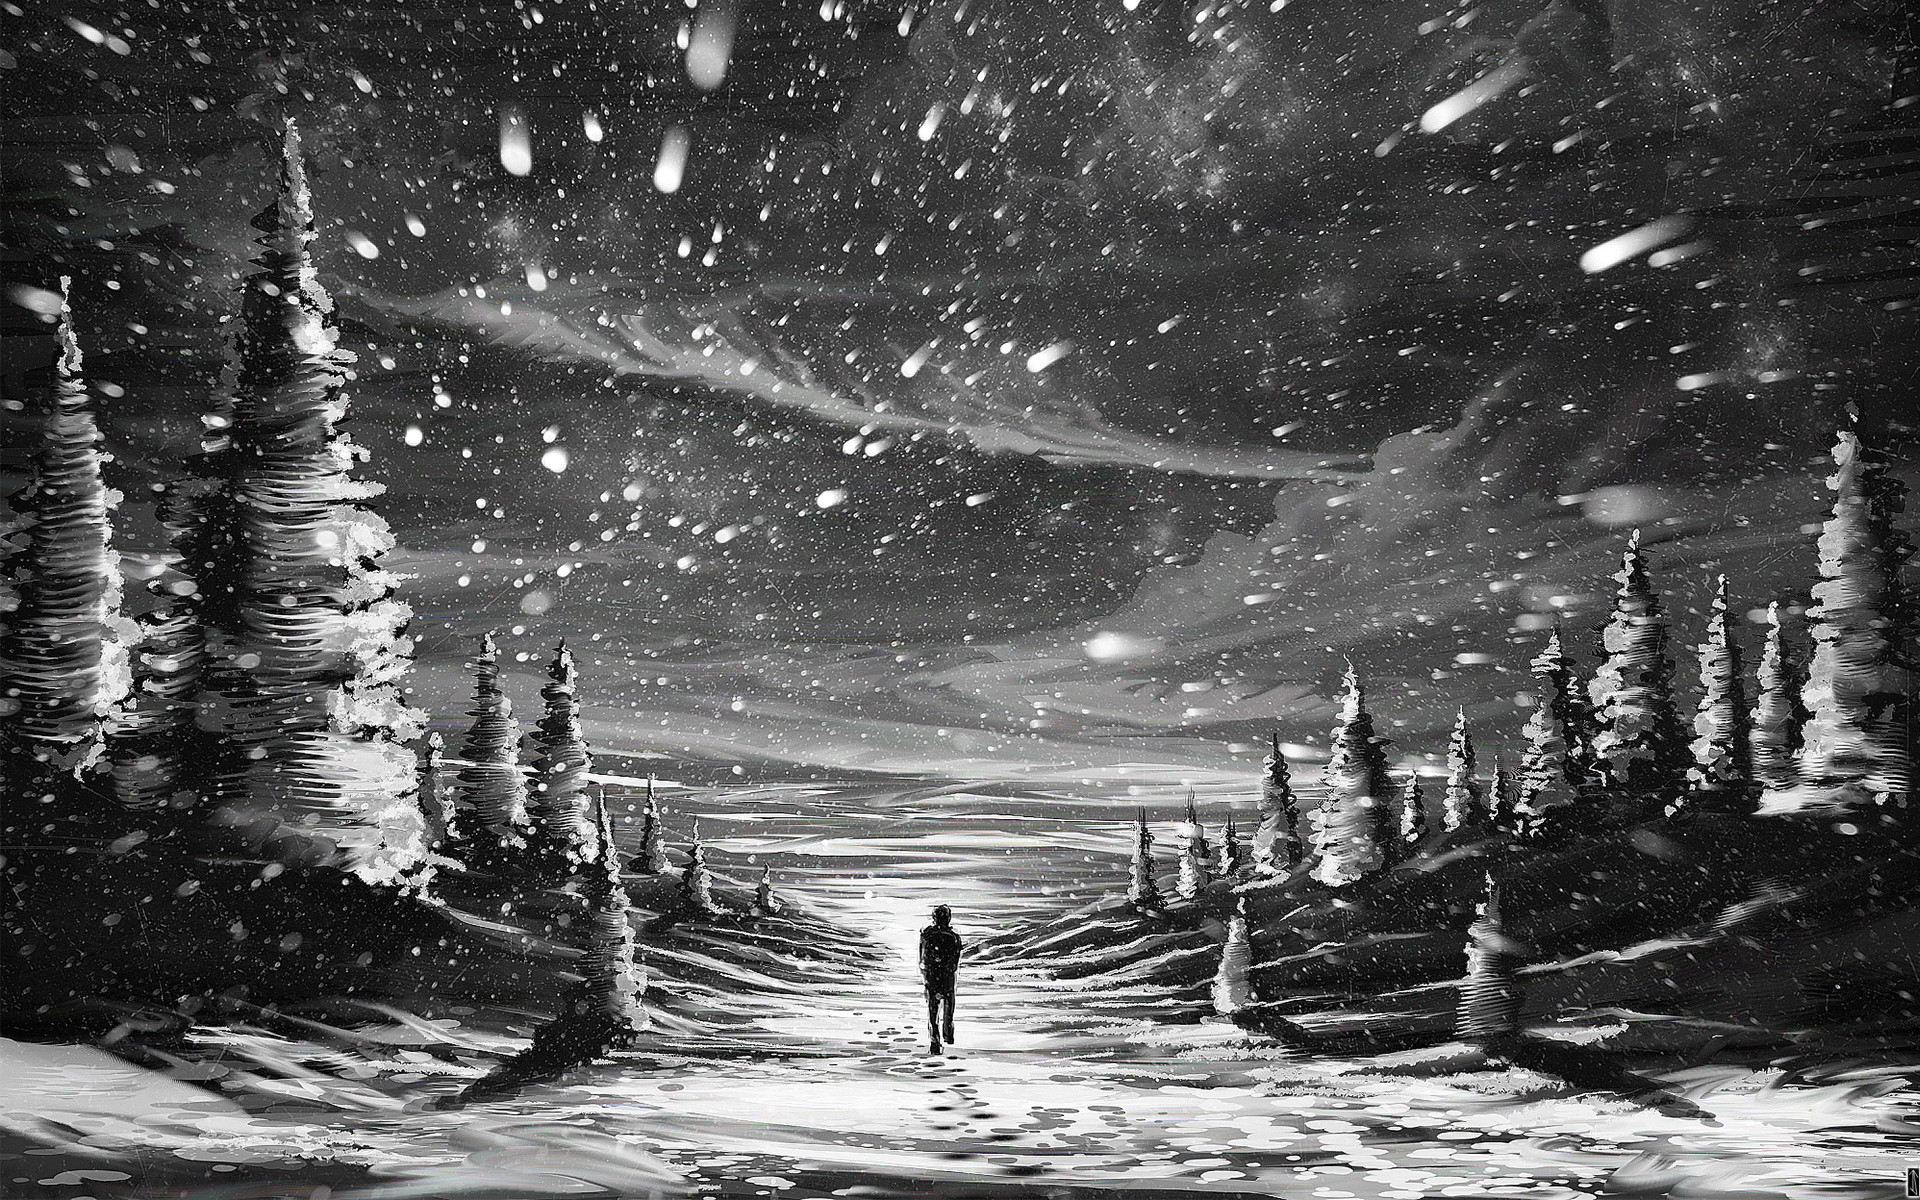 Alone in Snow wallpapers (80 Wallpapers)